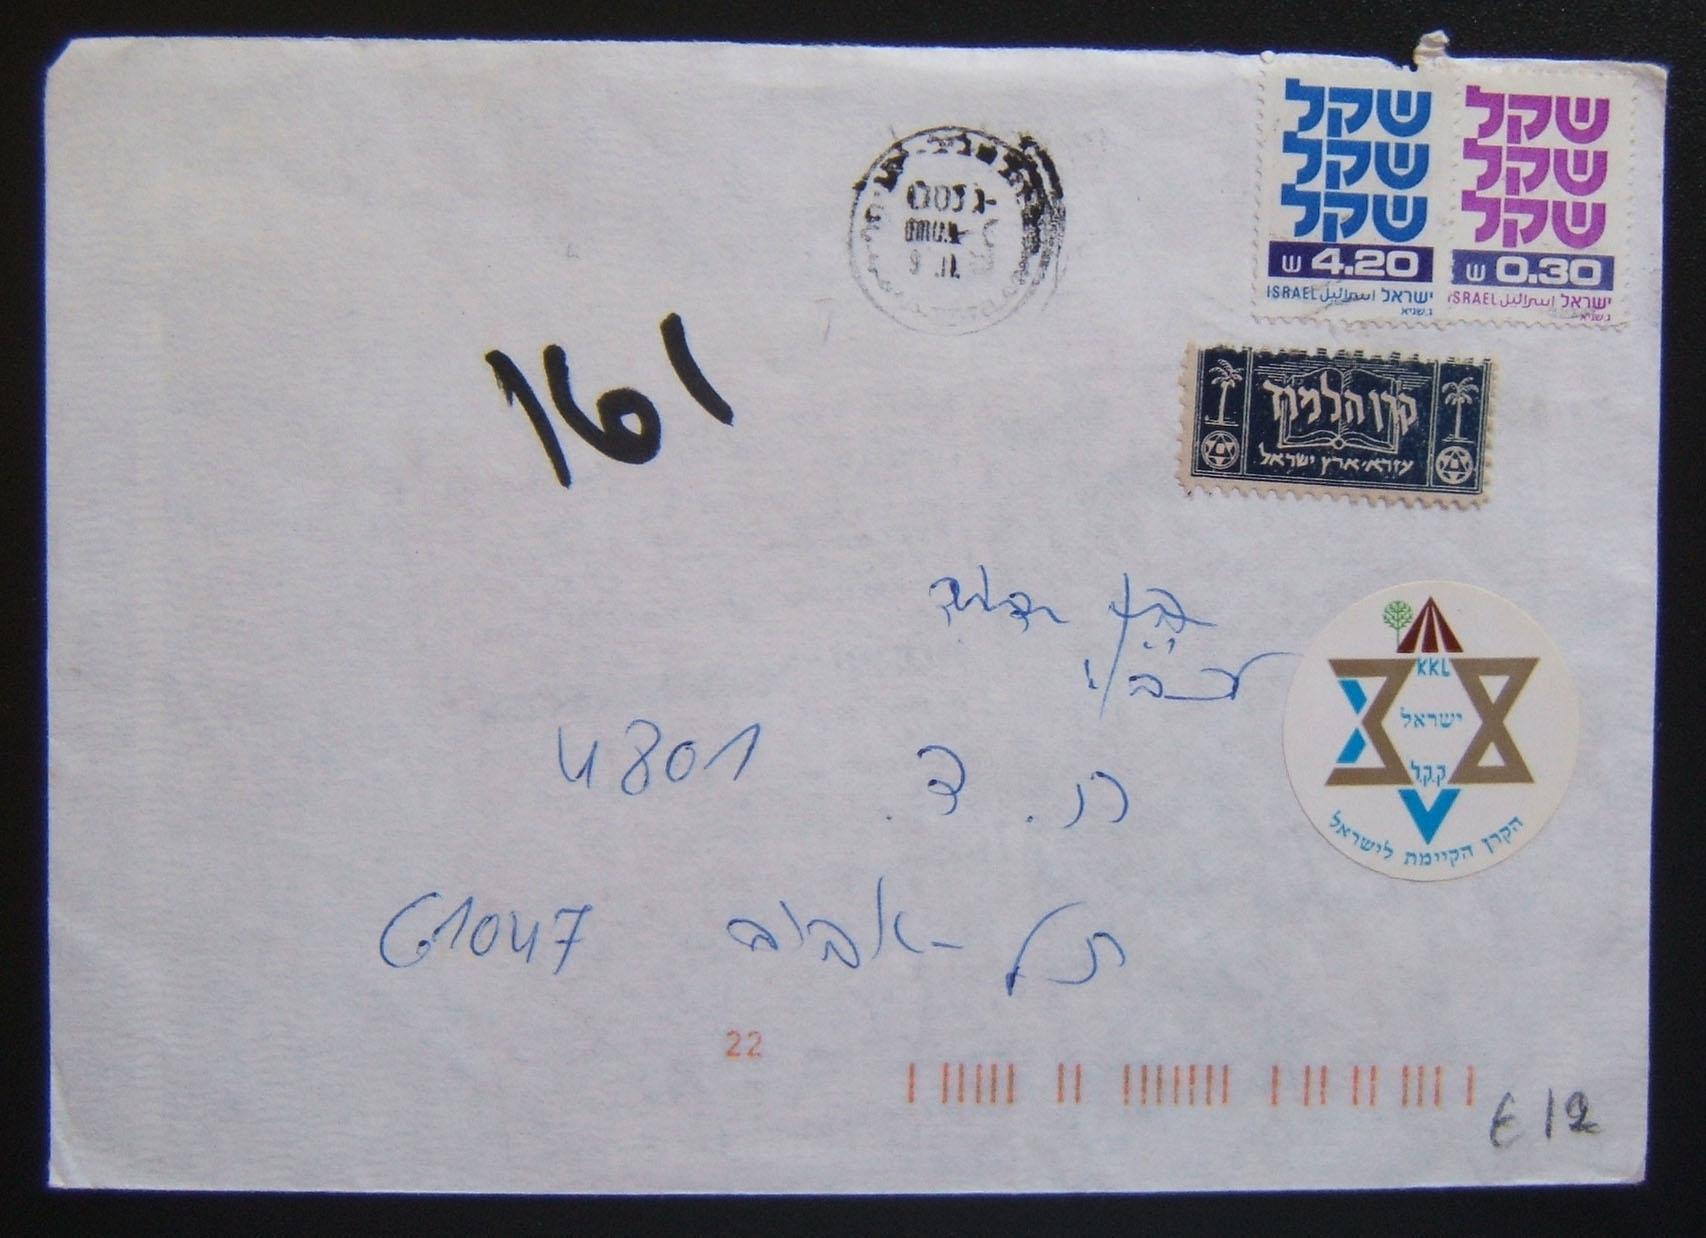 1983 Shekel inflation cover: 9-11-1983 local TLV commercial cover franked 4.50Sh at the new DO-48 period rate (4.43Sh letter rate; 0.07Sh overcharge) using 4.20Sh & 0.30Sh 1980 She